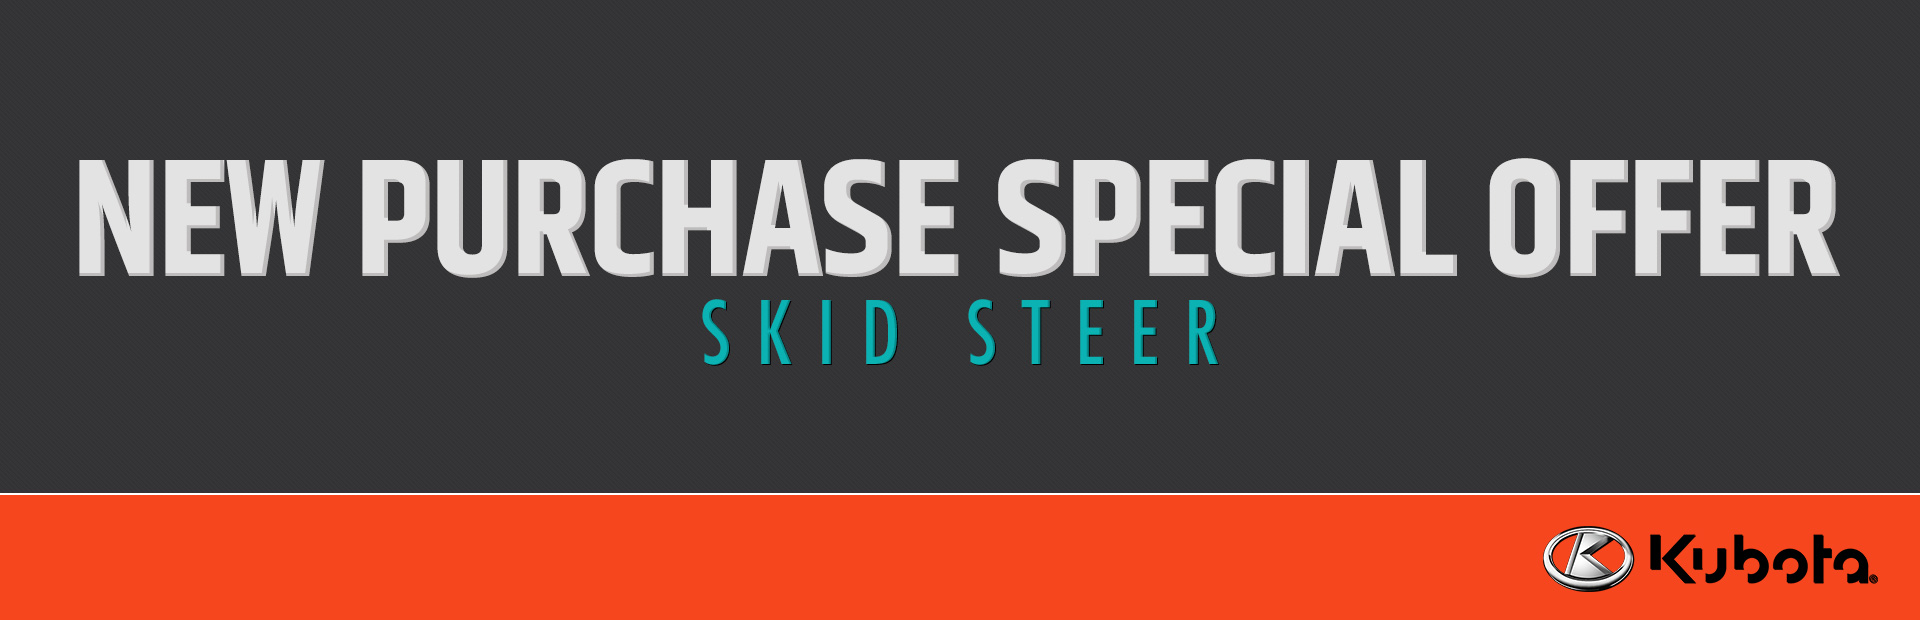 Kubota: New Purchase Special Offer - Skid Steer